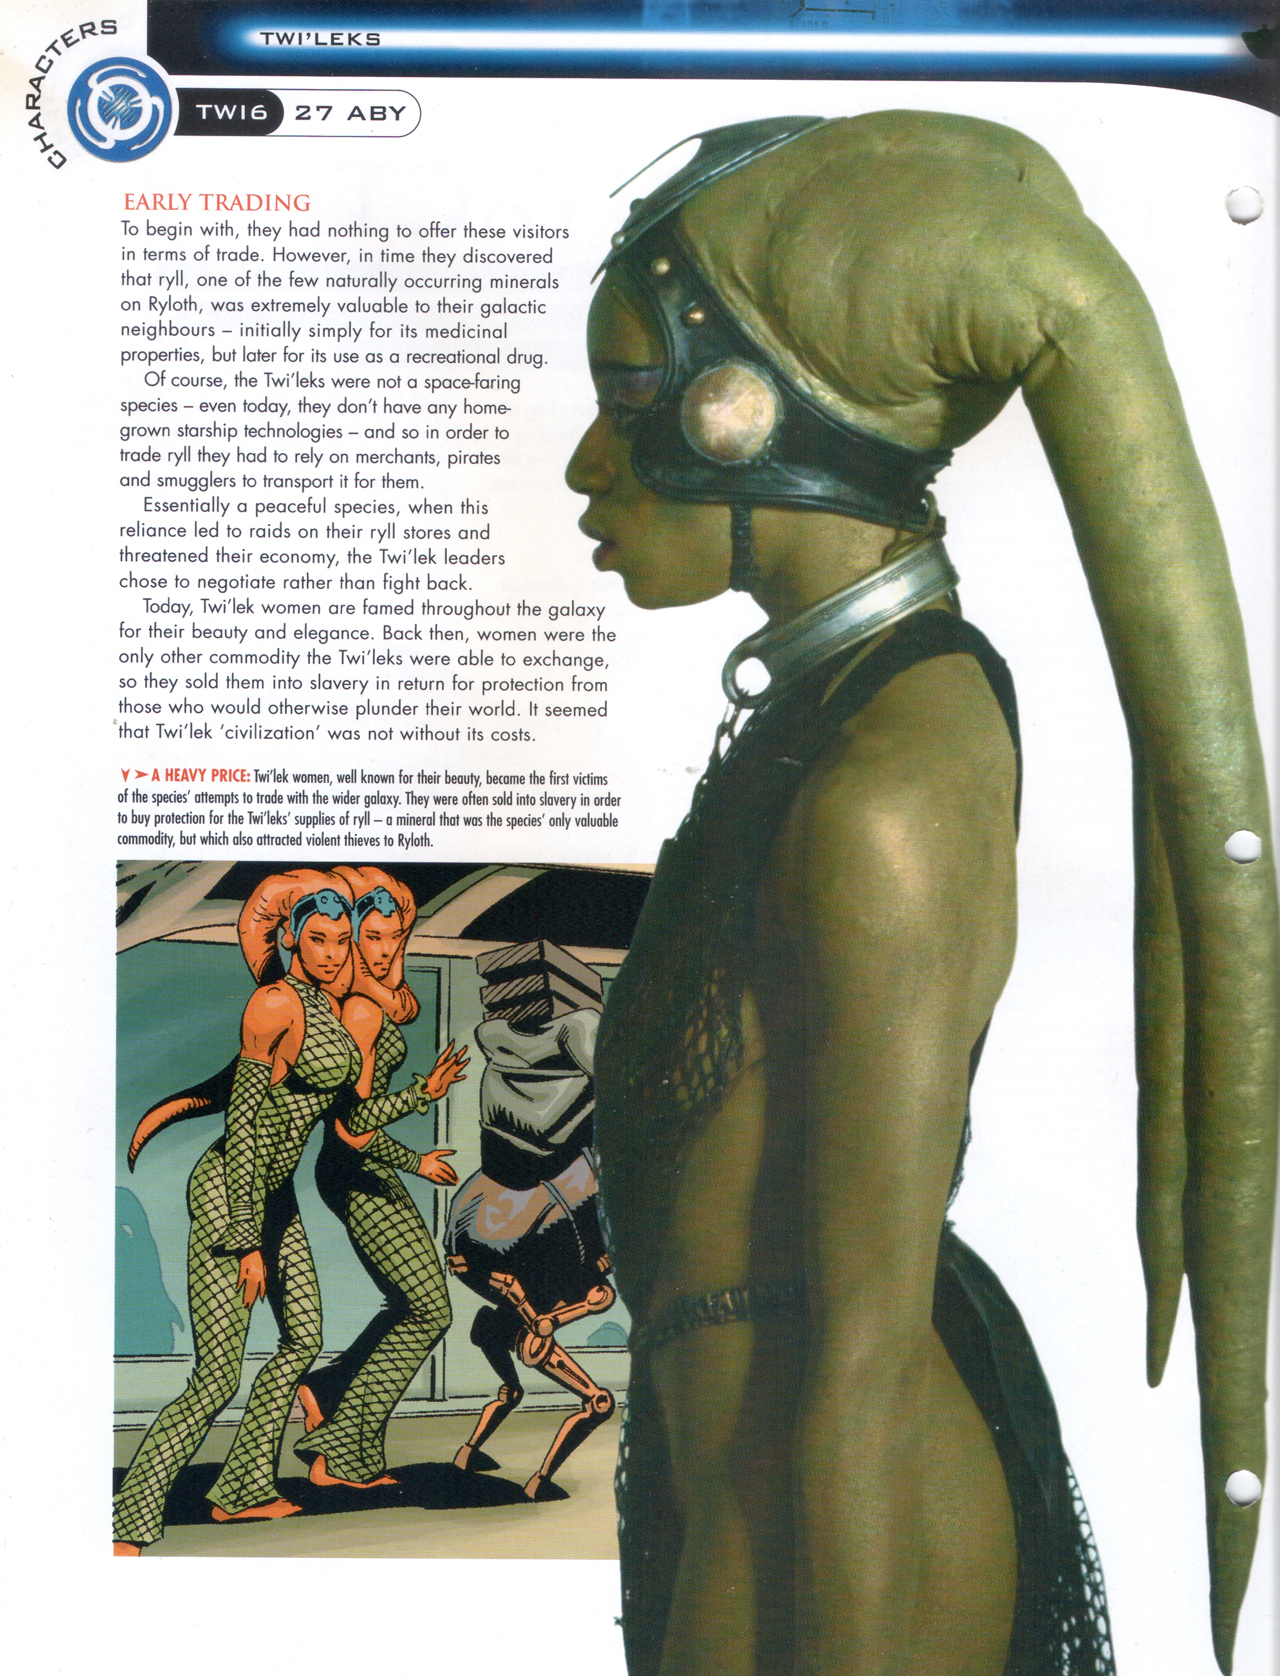 Oola in Star Wars Fact File 68 - Oola Jabba's Twi'lek Slave